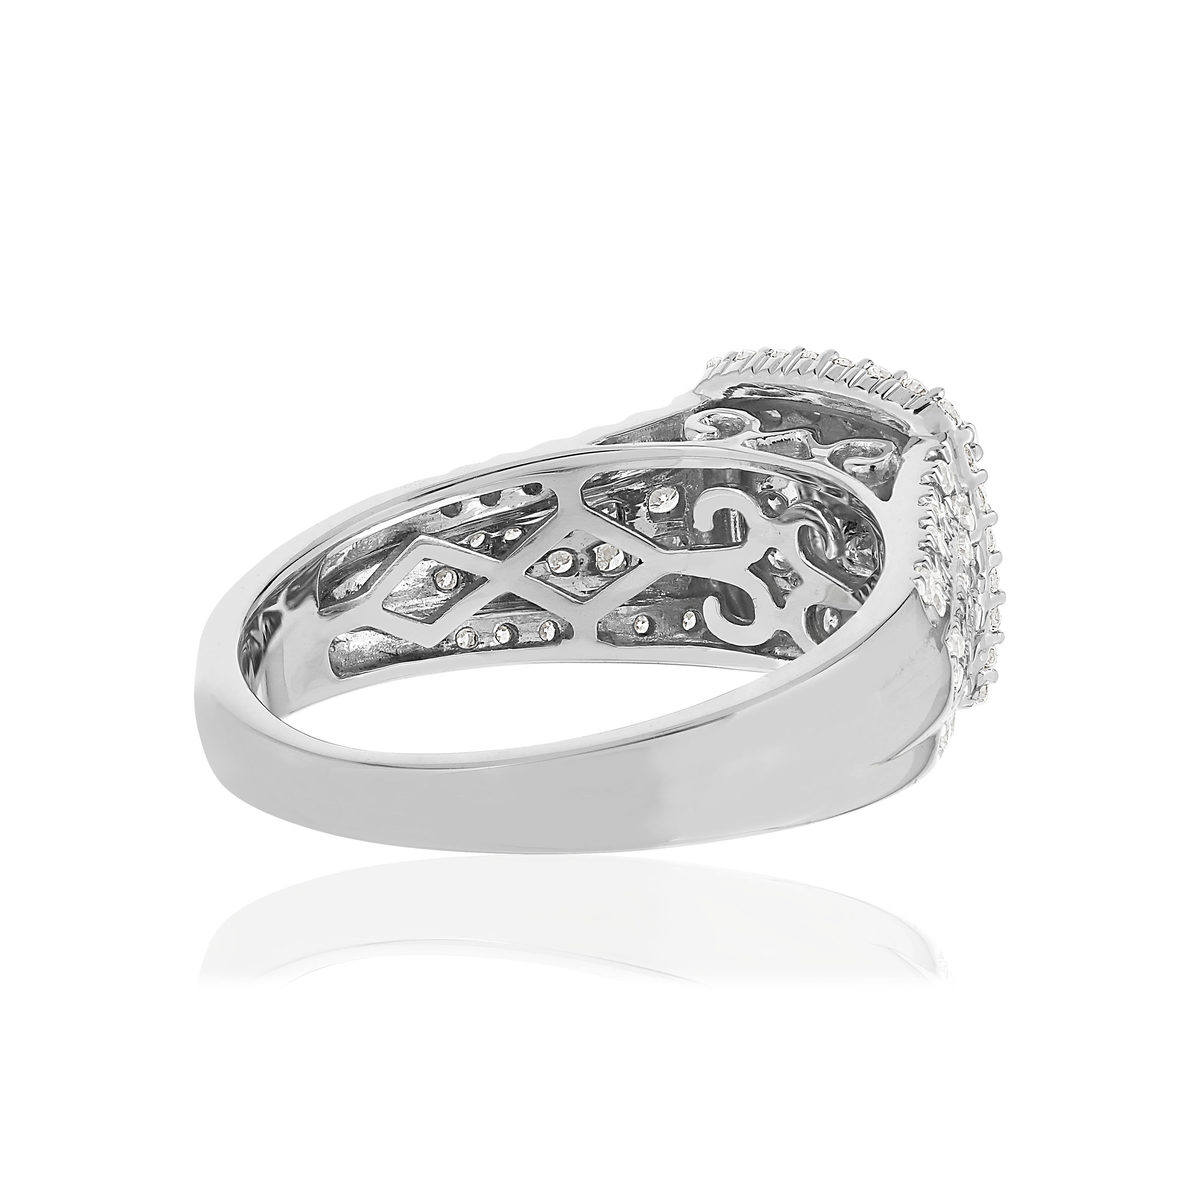 Bague MATY Or 750 blanc Diamants blancs - vue V4